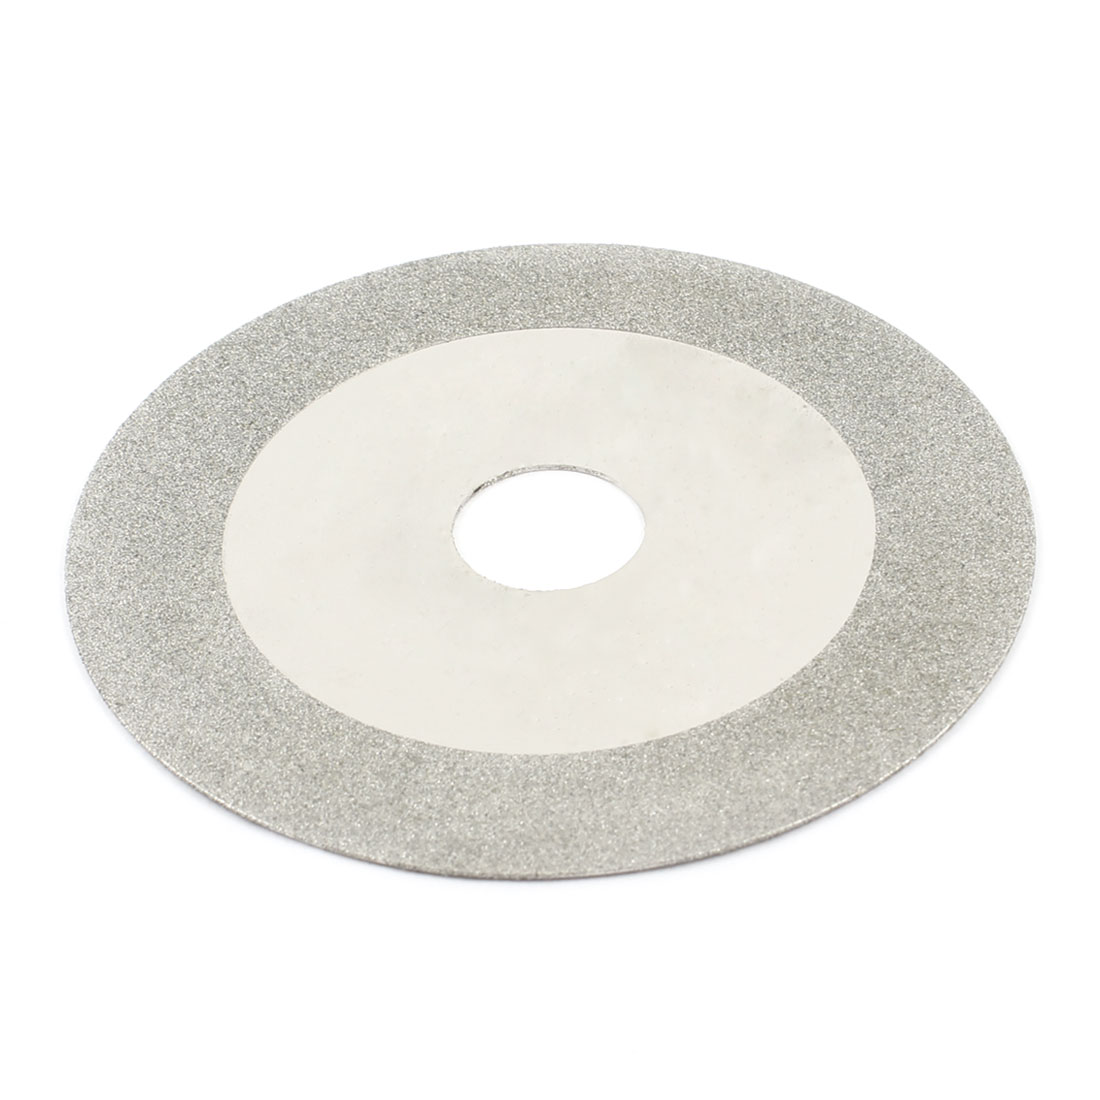 Granite Stone Electroplated Diamond Cutting Wheel Saw Slice 100mm x 20mm x 0.8mm